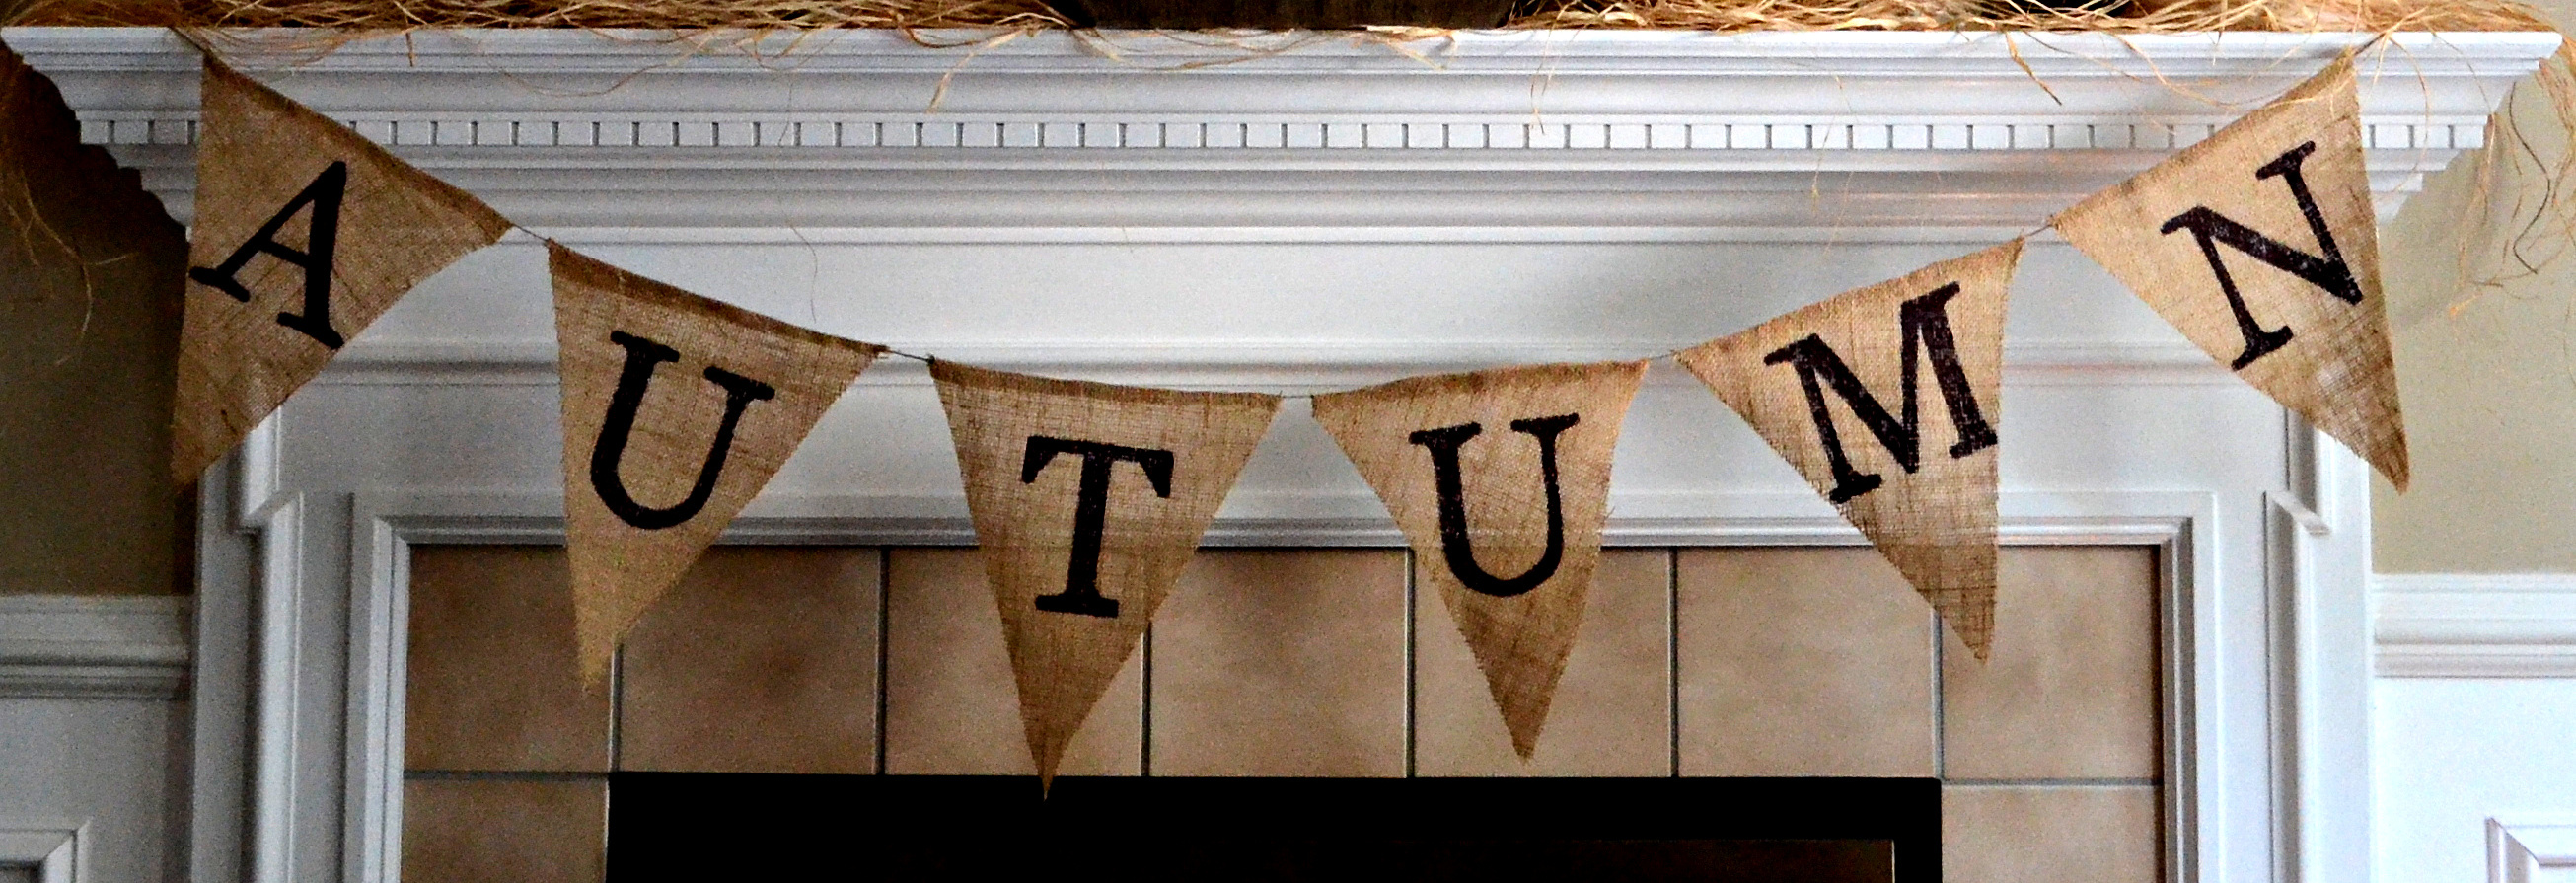 DIY Burlap Pennant Banner | My Love of Style – My Love of Style